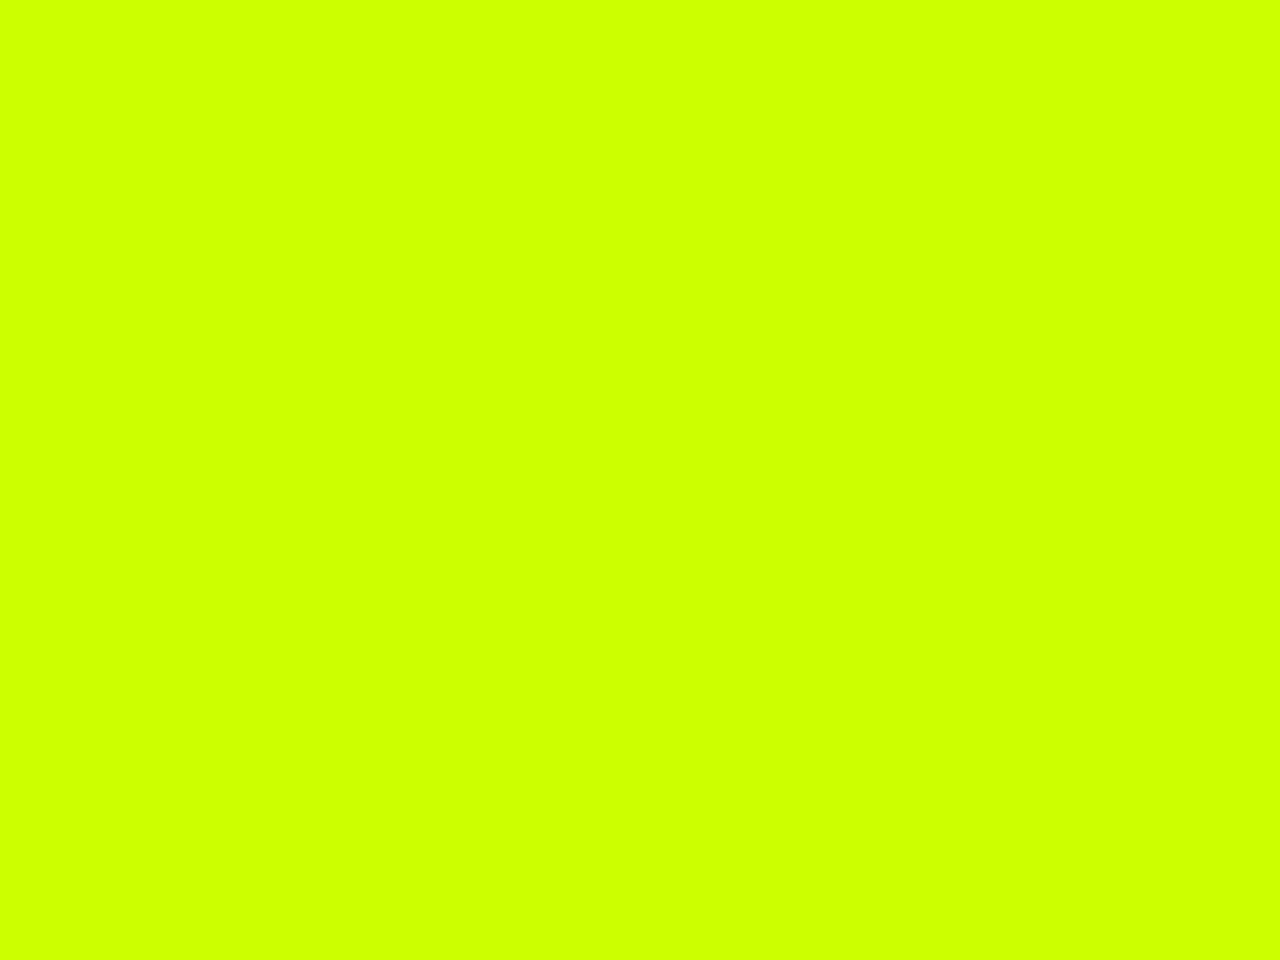 1280x960 Fluorescent Yellow Solid Color Background